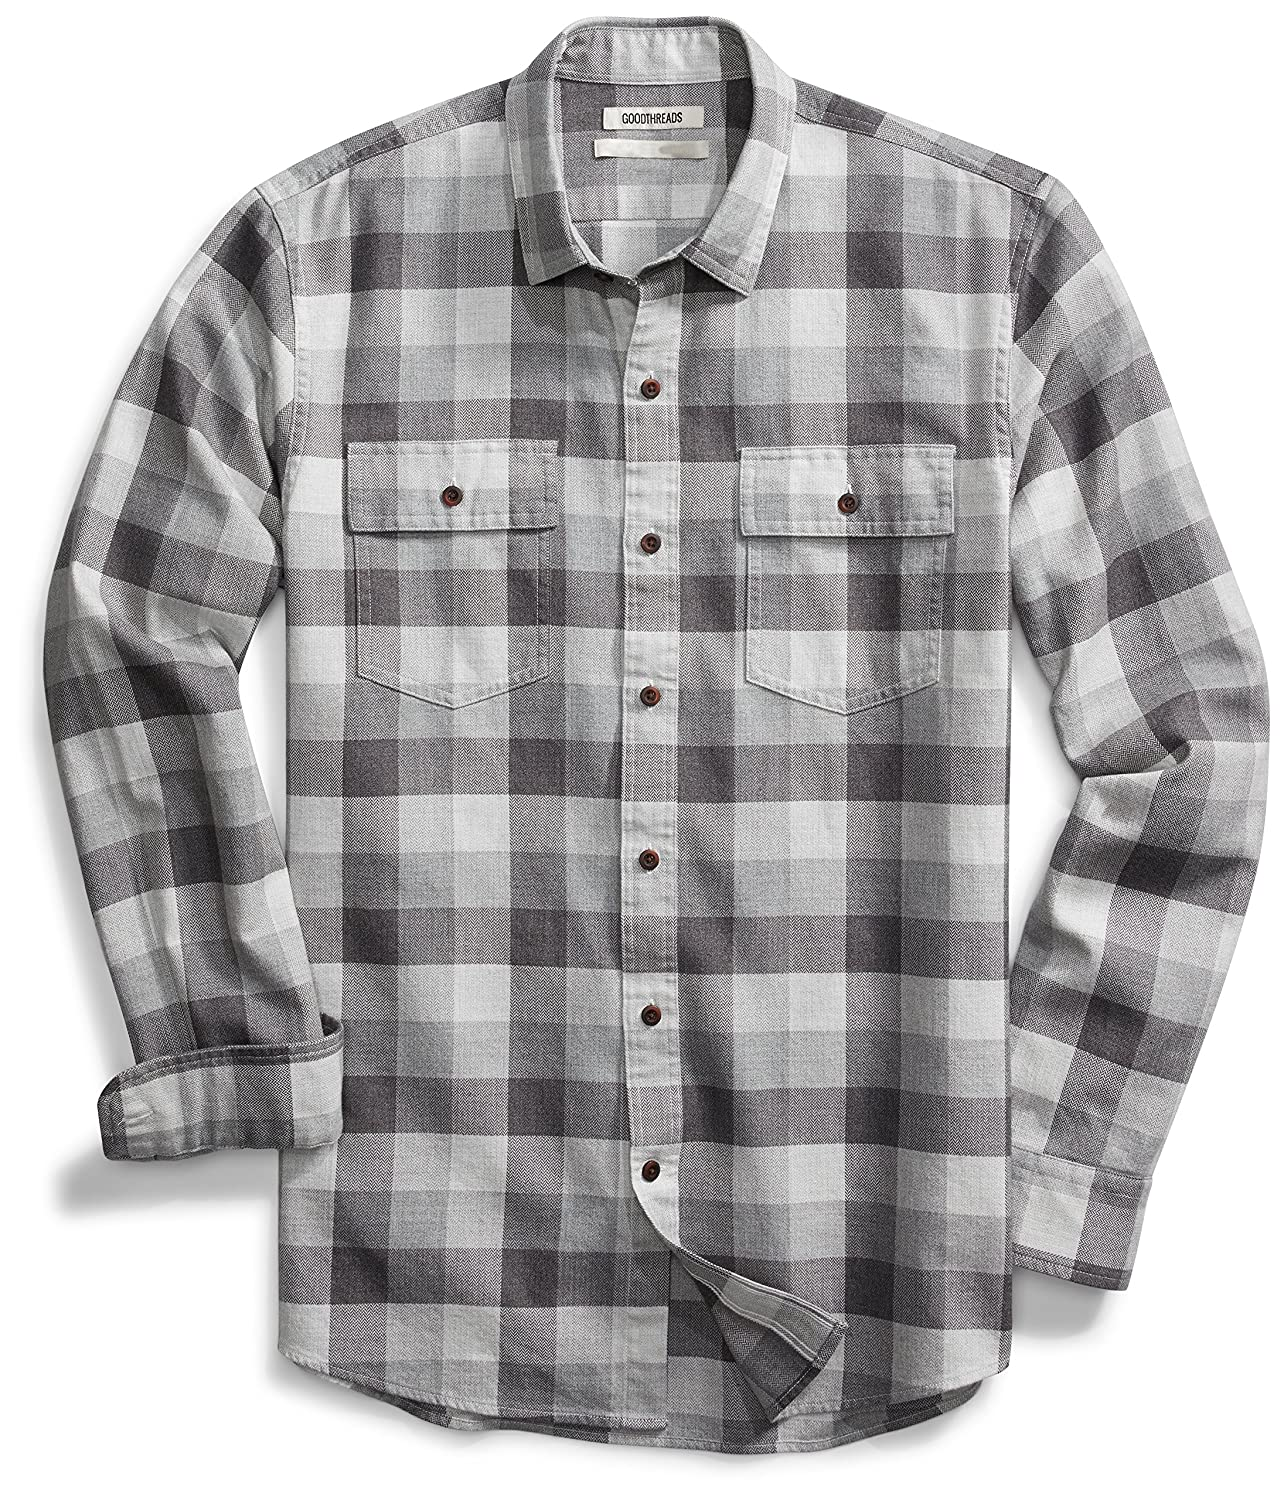 Goodthreads Men's Slim-Fit Long-Sleeve Buffalo Plaid Herringbone Shirt GT25041